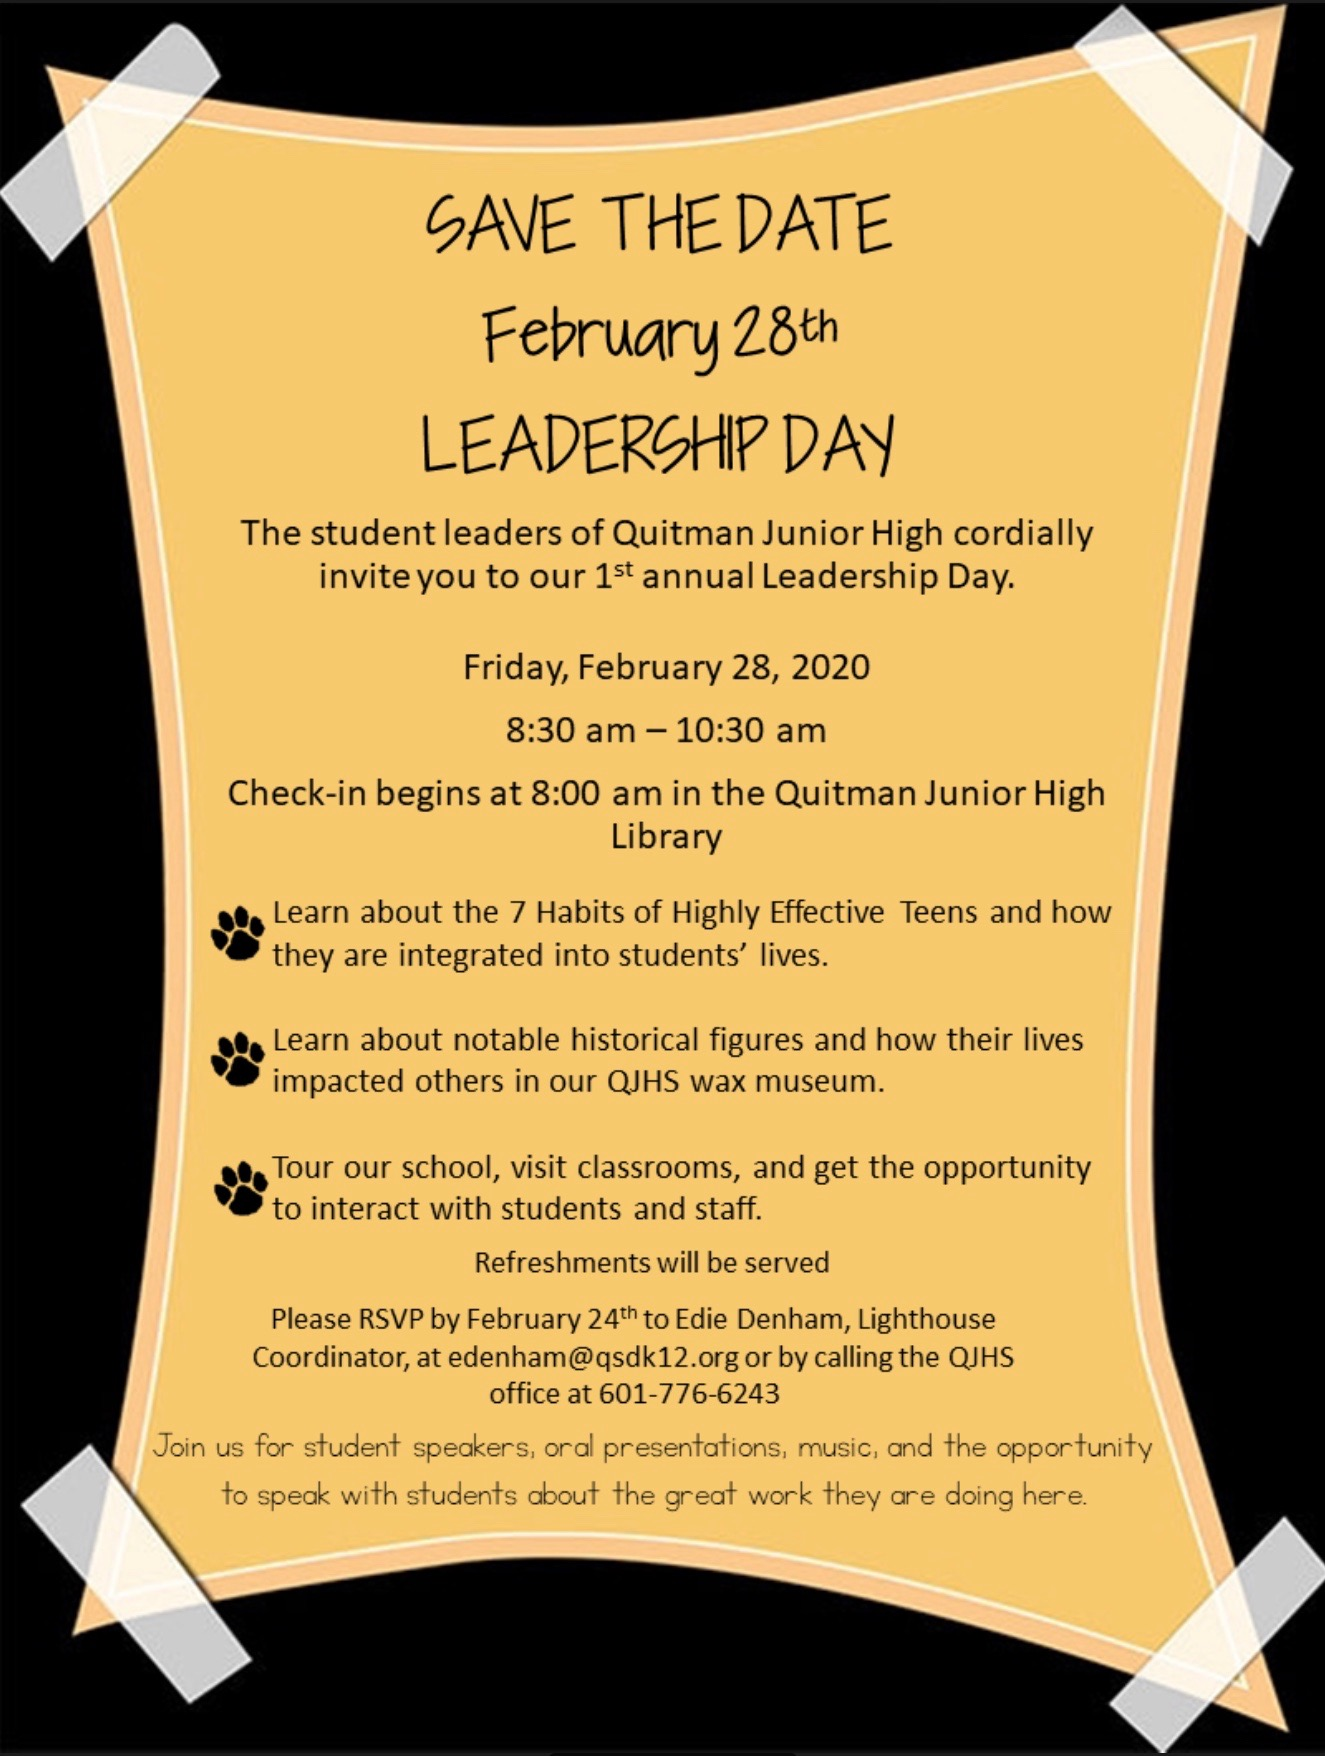 A flyer for Leadership Day at QJH